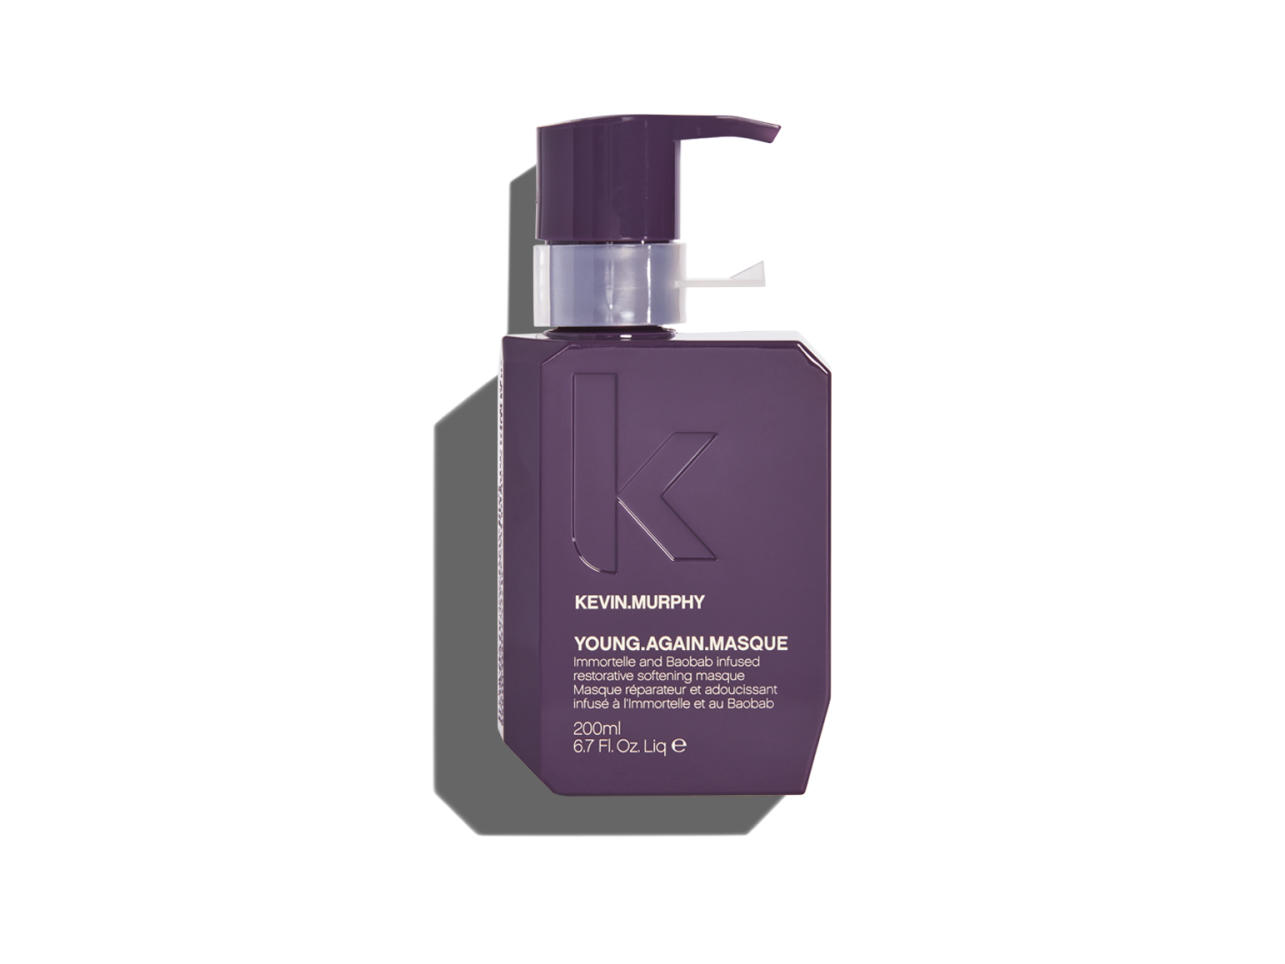 Arma Beauty - Kevin Murphy - YOUNG.AGAIN.MASQUE